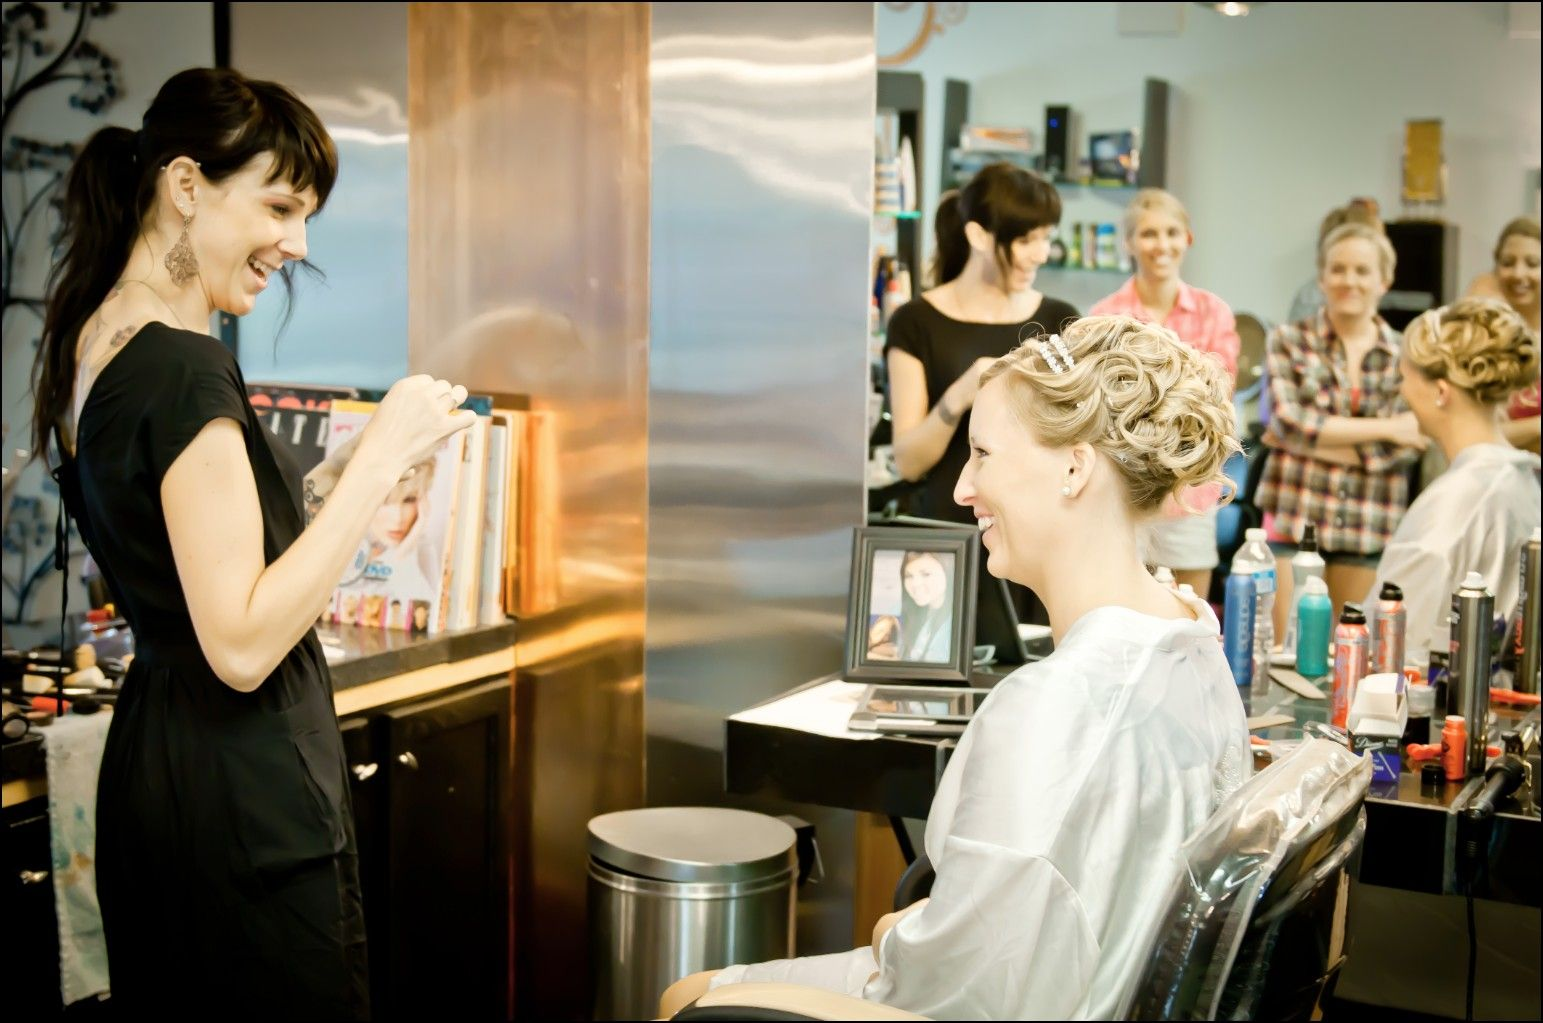 Haircut West Des Moines Image Collections Haircuts For Men And Women